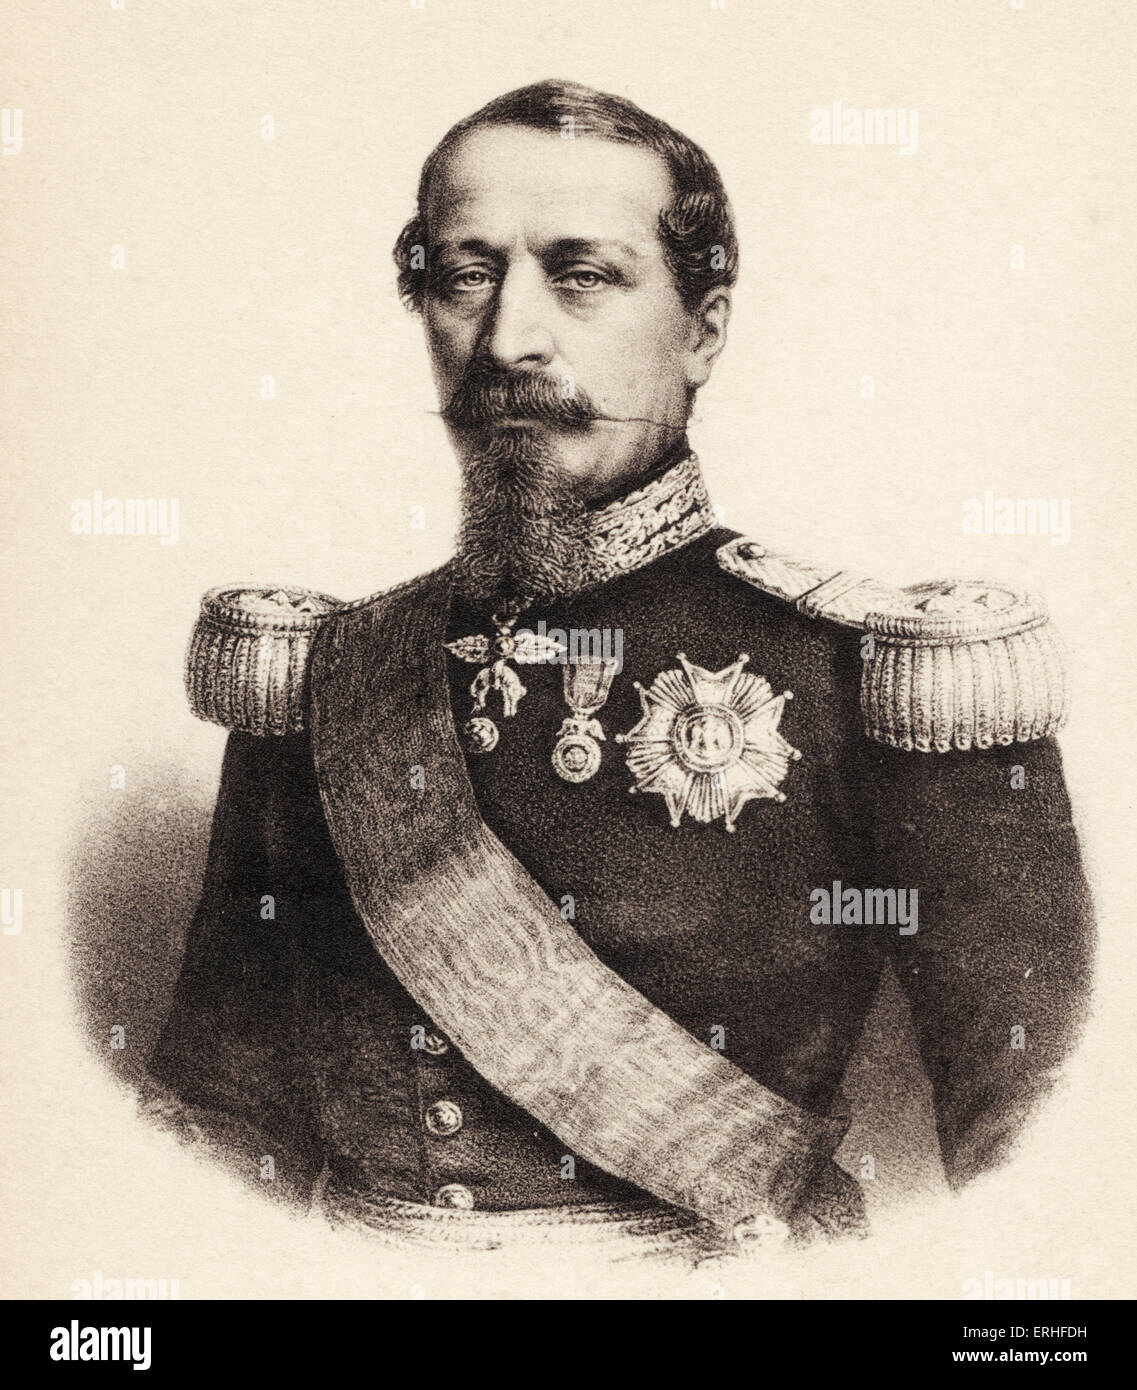 Napoleon III - portrait in uniform. 20 April 1808 - 9 January 1873.  Attempted coup against French King Louis Philippe. - Stock Image